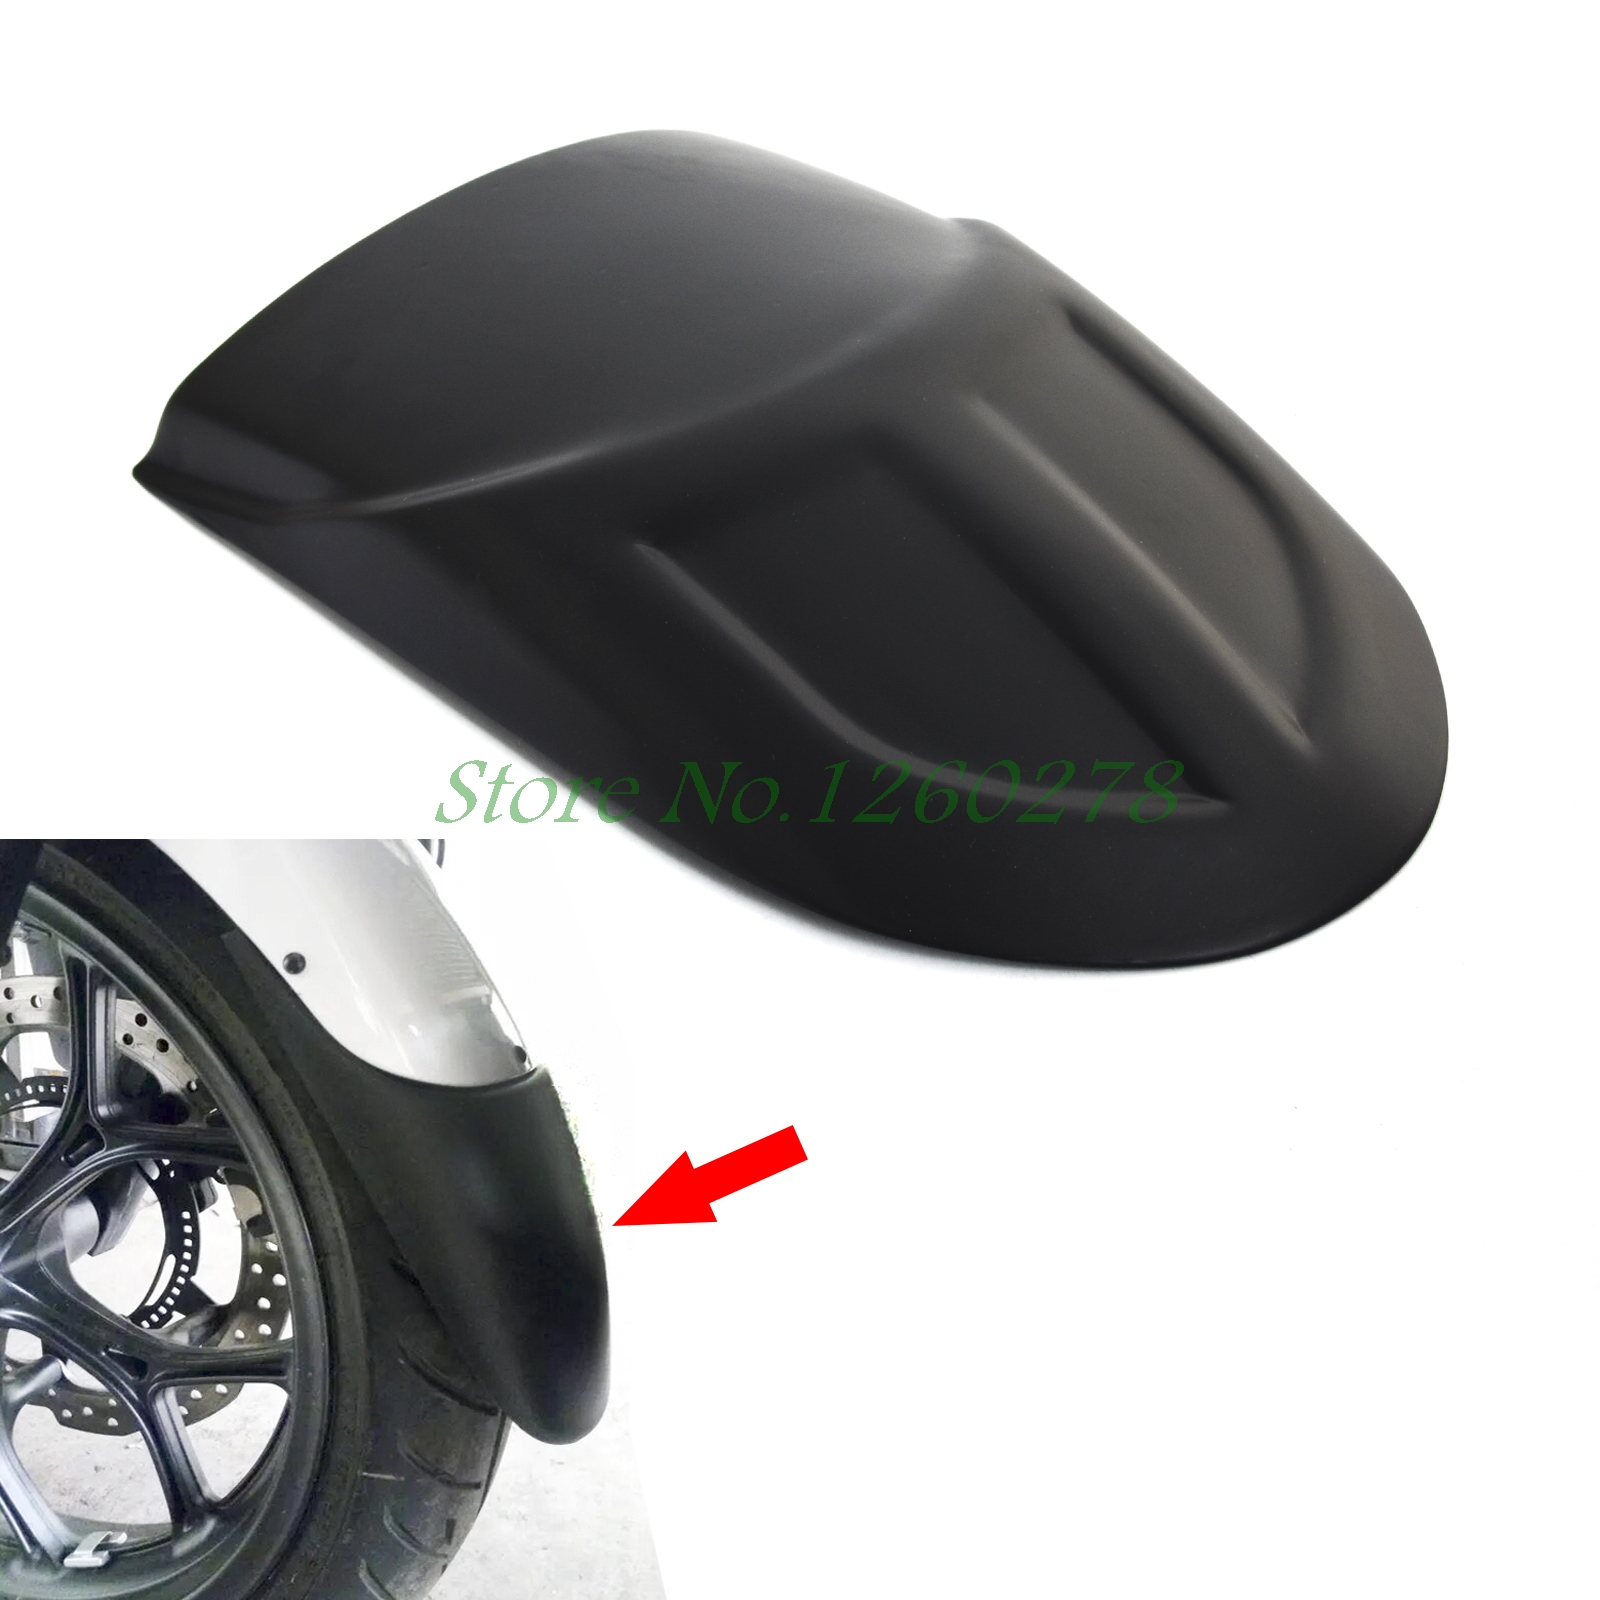 Motorcycle Front Fender Extension Extender For Kawasaki Versys 1000 Versys 650 KLE650 2010 2011 2012 2013 2014 2015 2016 2017 motorcycle front mudguard fender rear extender extension for ktm duke 200 390 2011 2012 2013 2014 2015 2016 2017